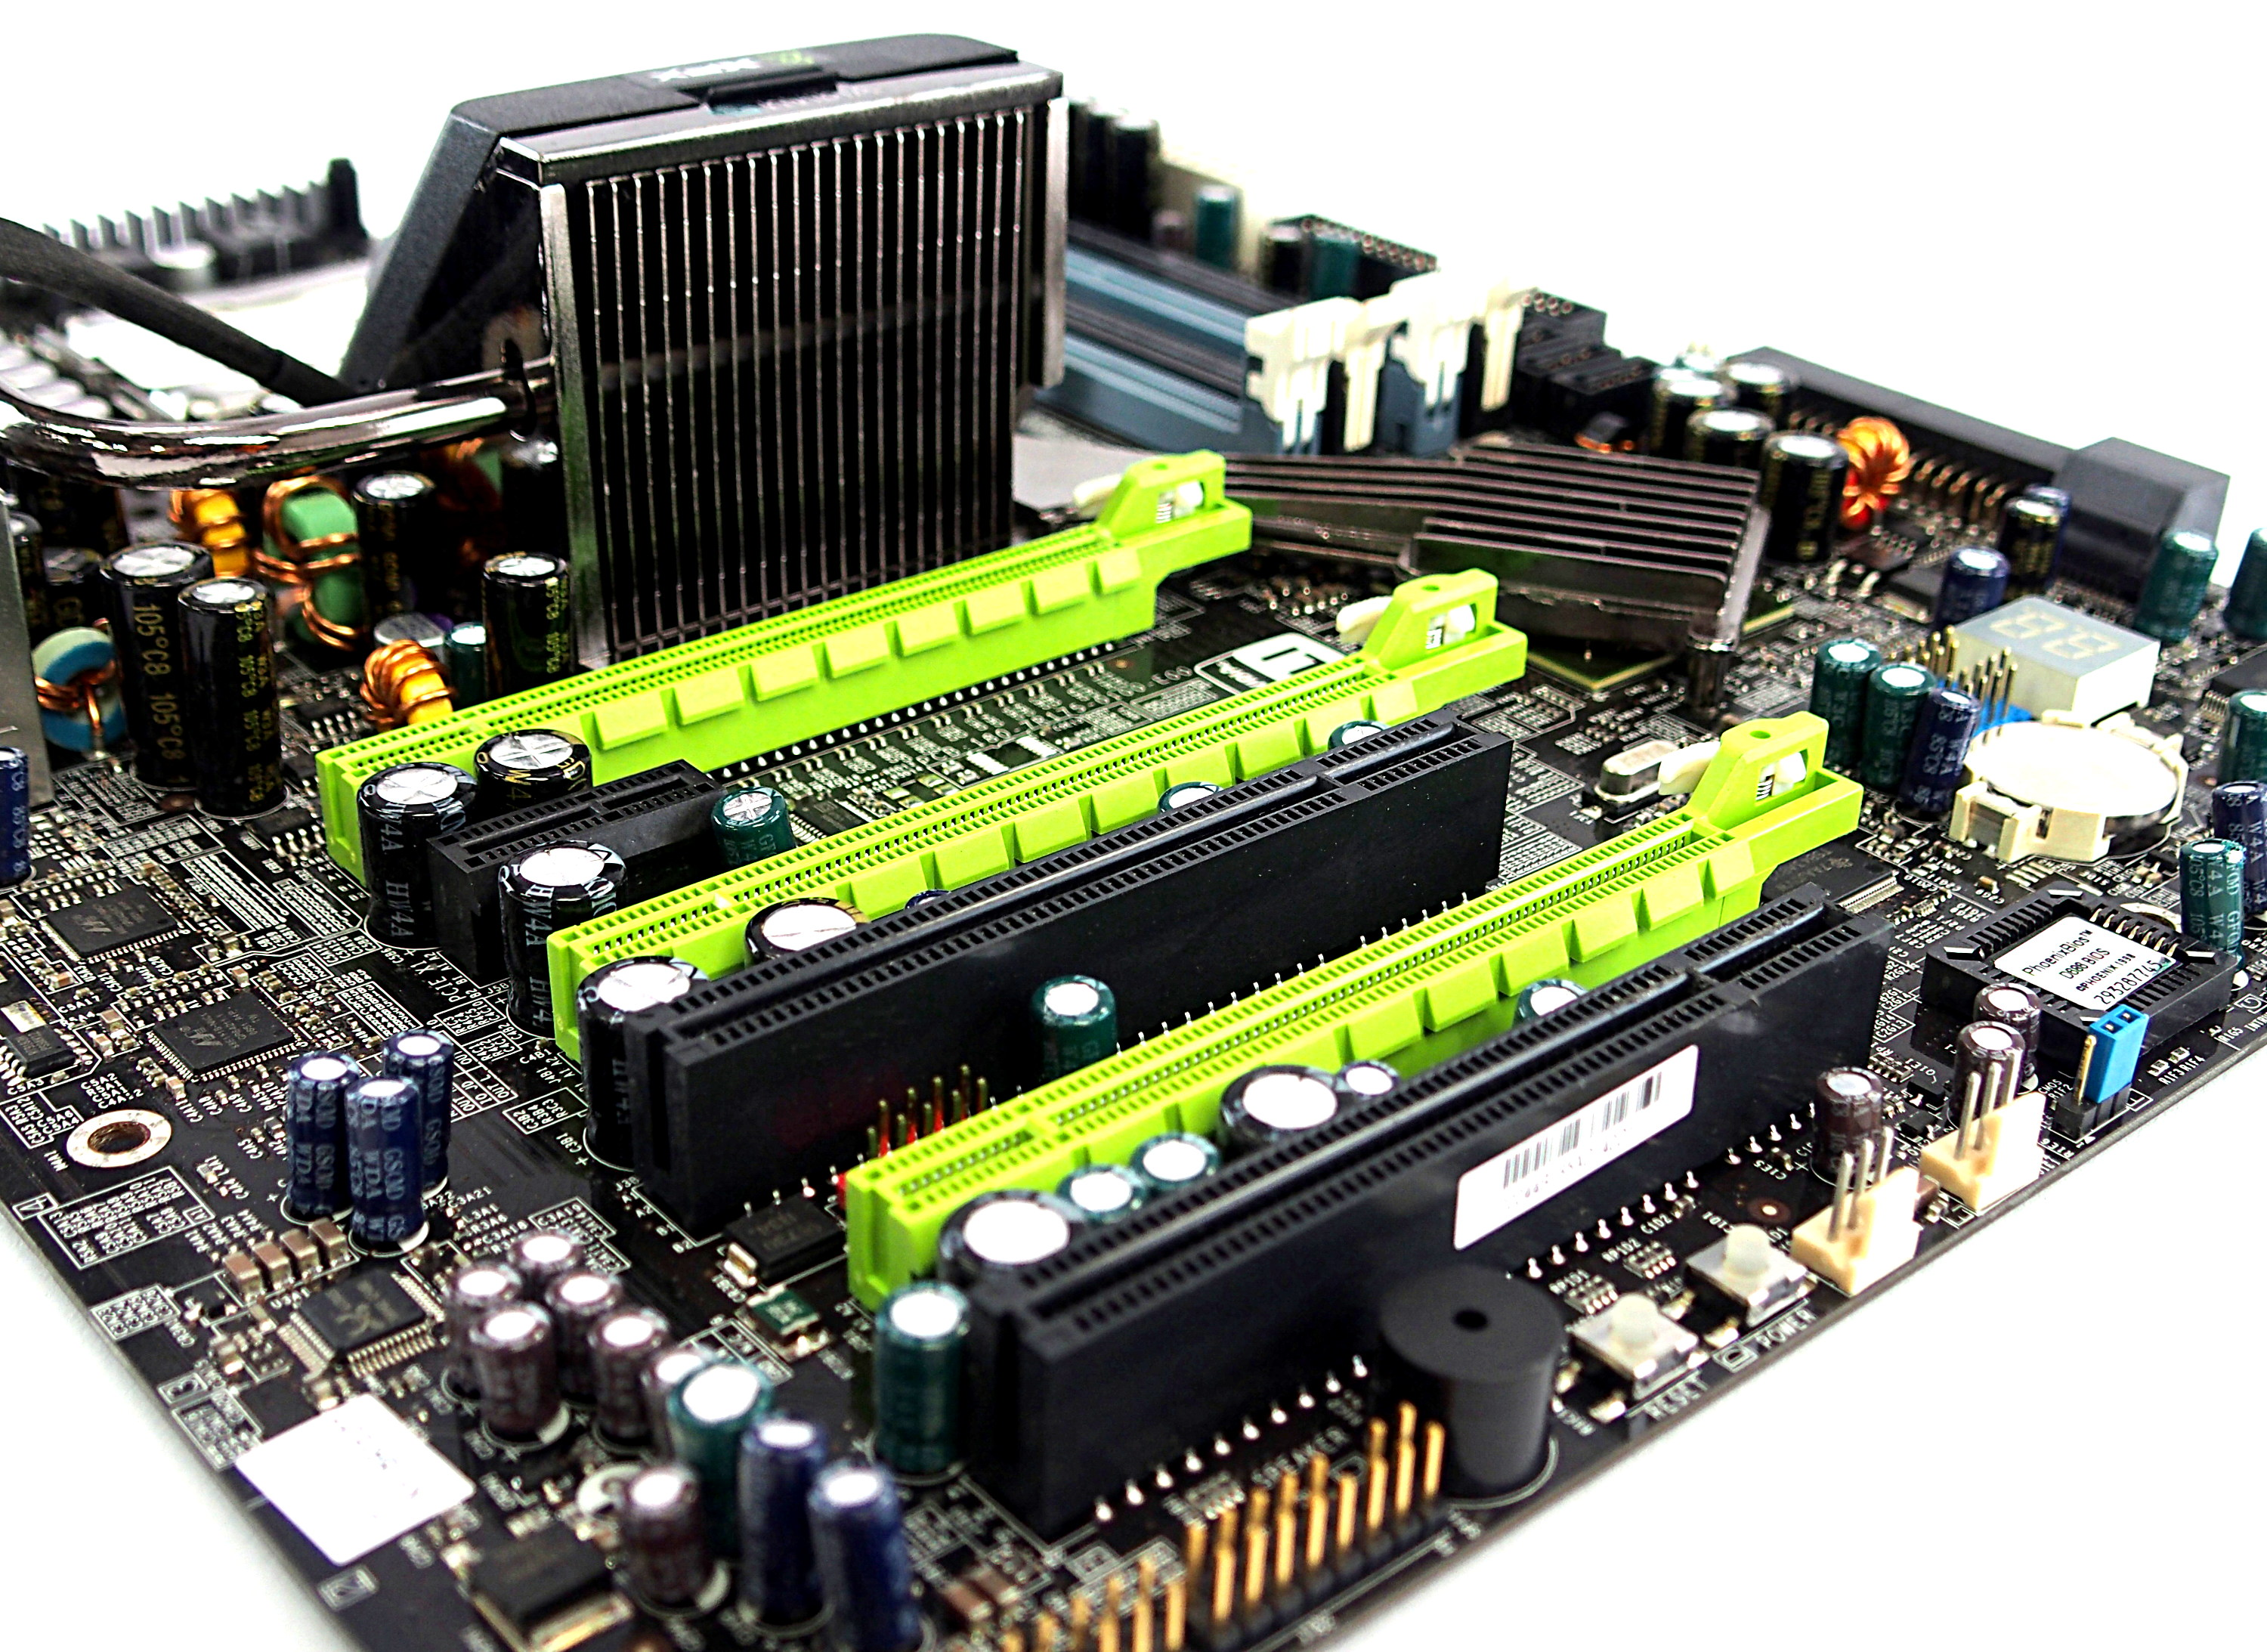 XFX 780I MOTHERBOARD DRIVER FOR MAC